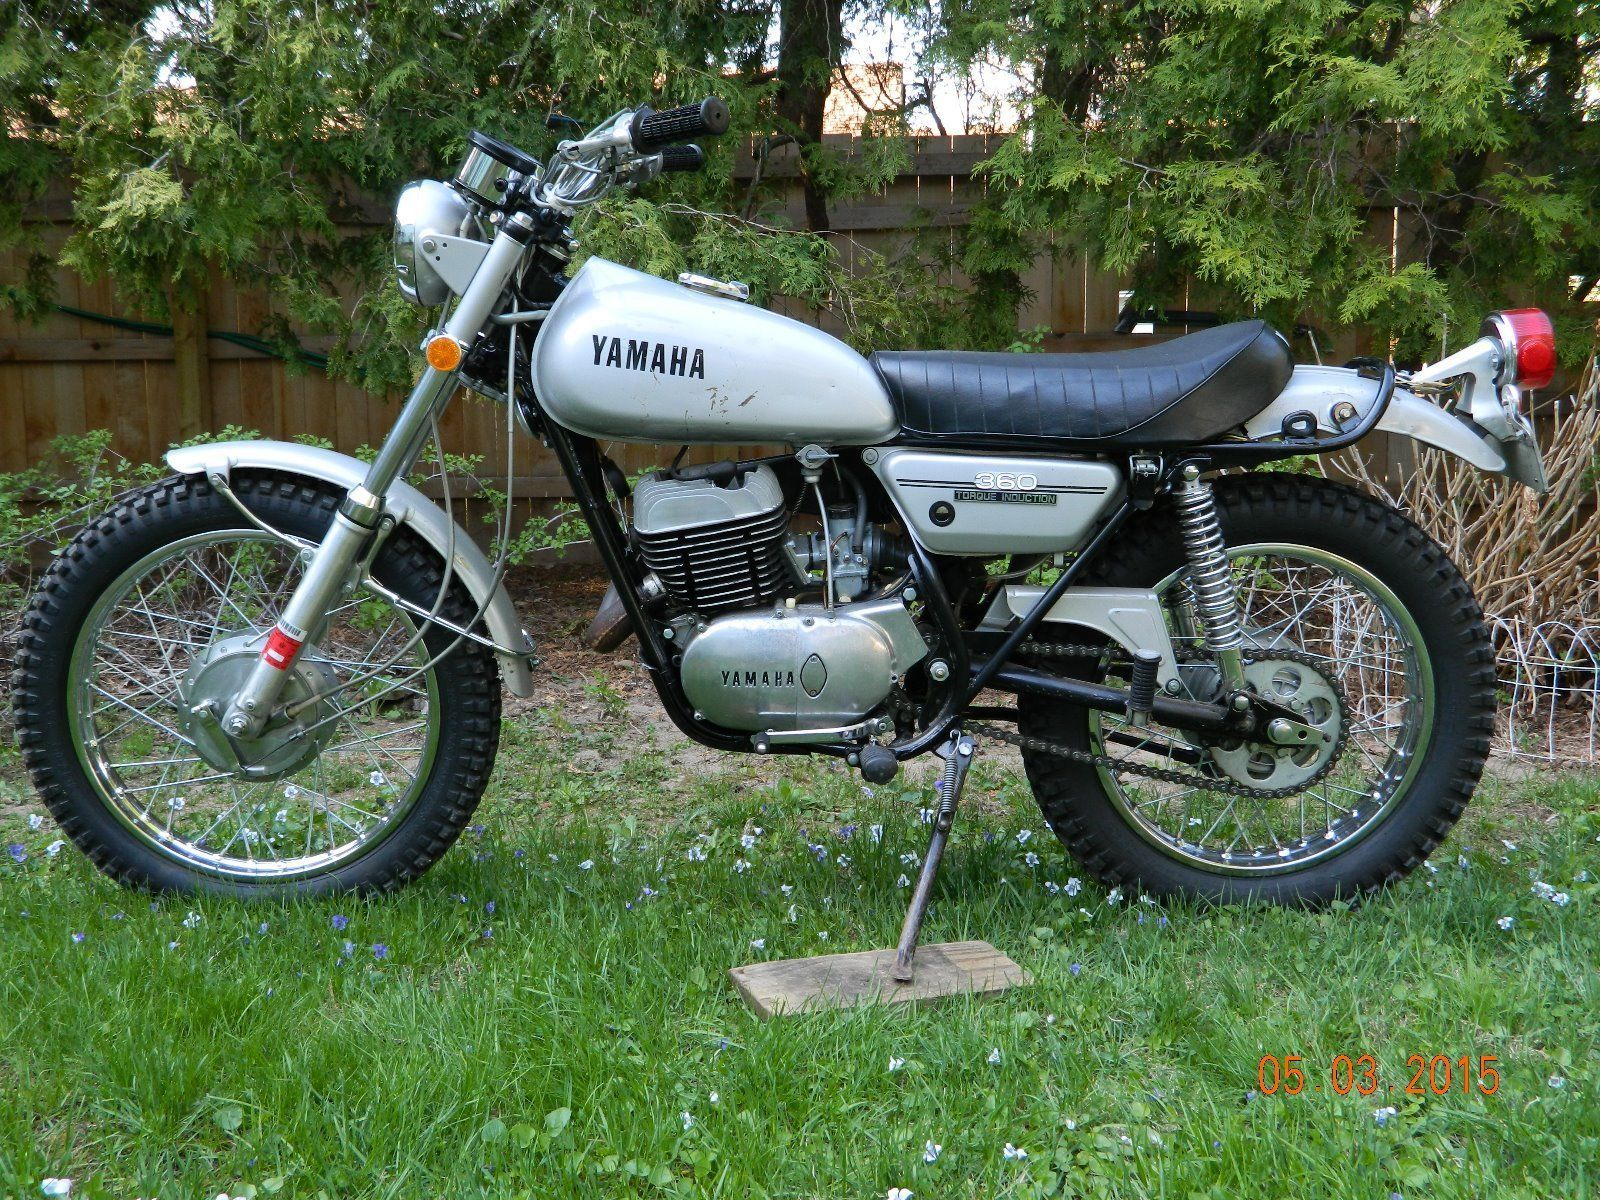 1972 yamaha rt2 360 enduro motorcycle ebay 1972 yamaha rt2 pinterest scrambler. Black Bedroom Furniture Sets. Home Design Ideas